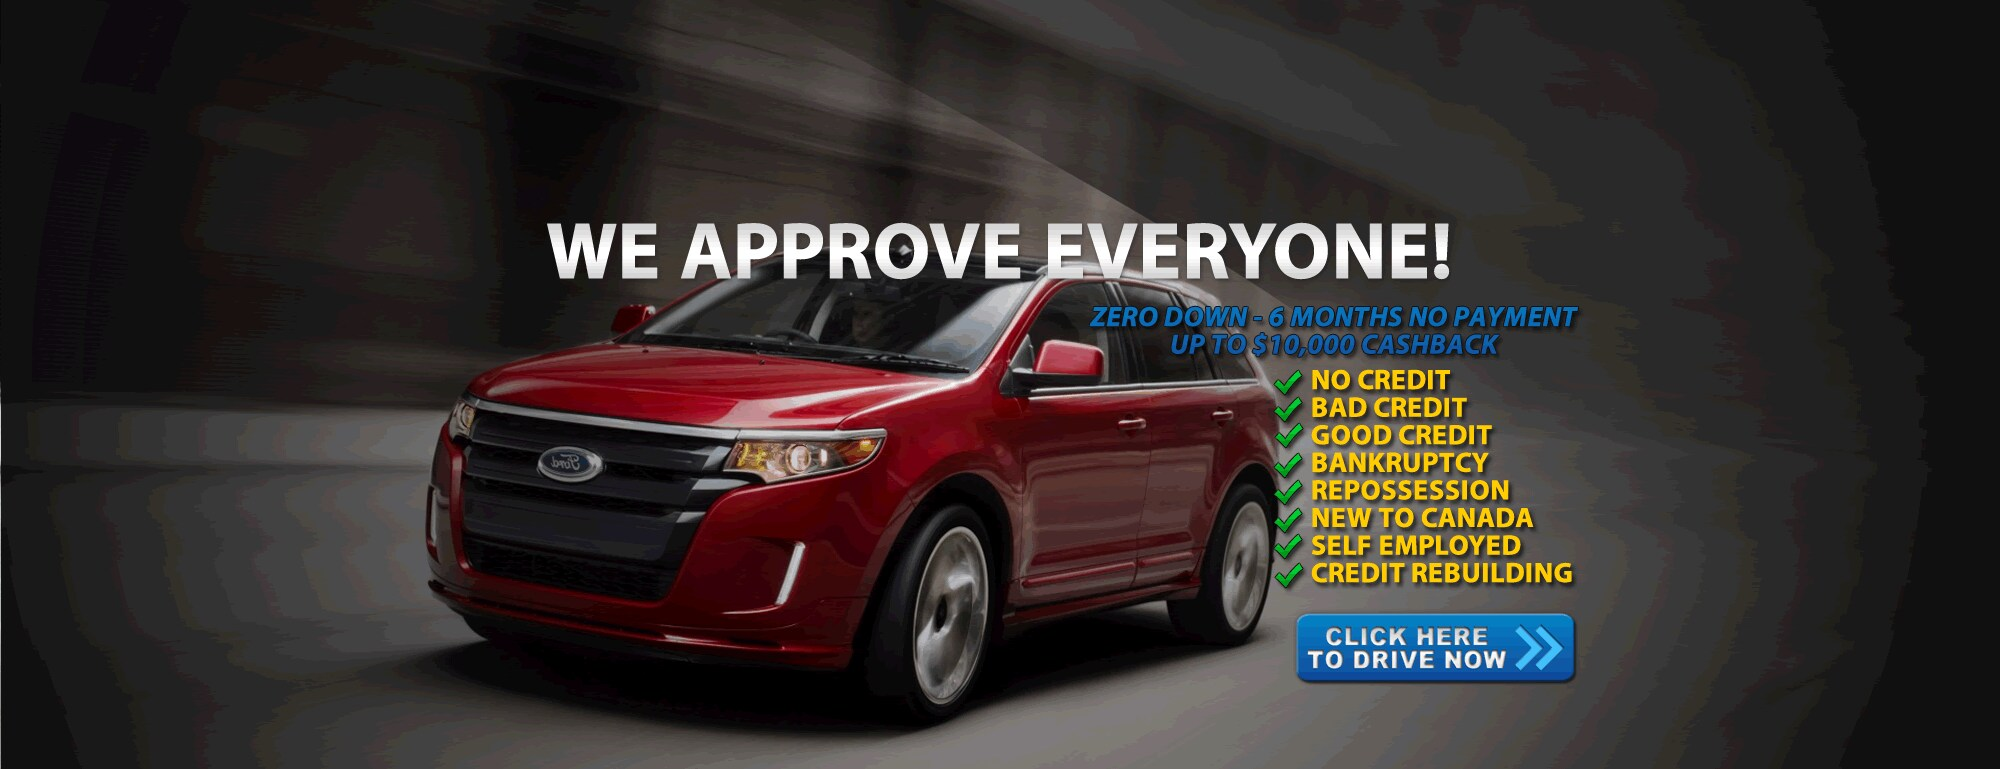 Used Cars For Sale in Calgary - The Gallery of Fine Cars | Serving ...